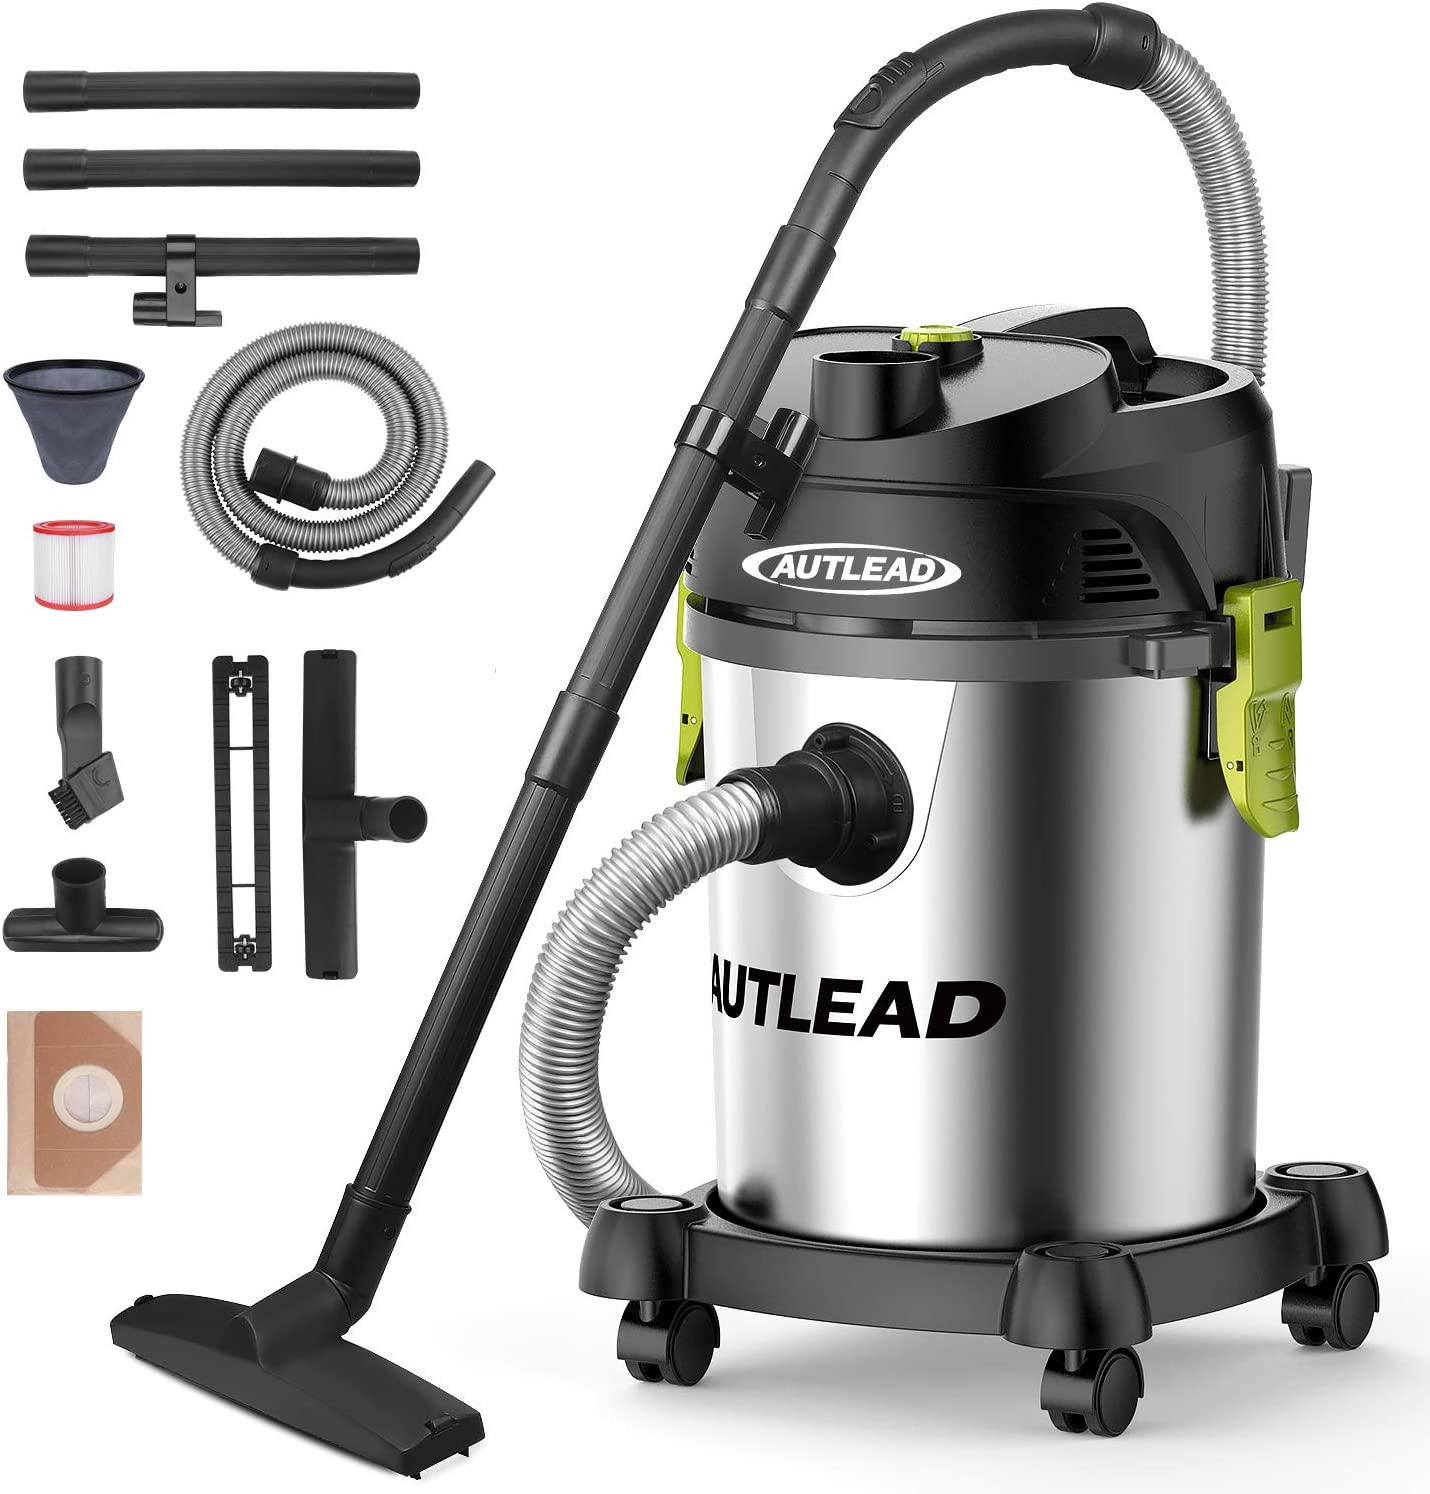 AUTLEAD Shop Vac 5.5 Gallon Steel Tank 5.5 Peak HP wet dry vacuum with Attachments, WDS03A